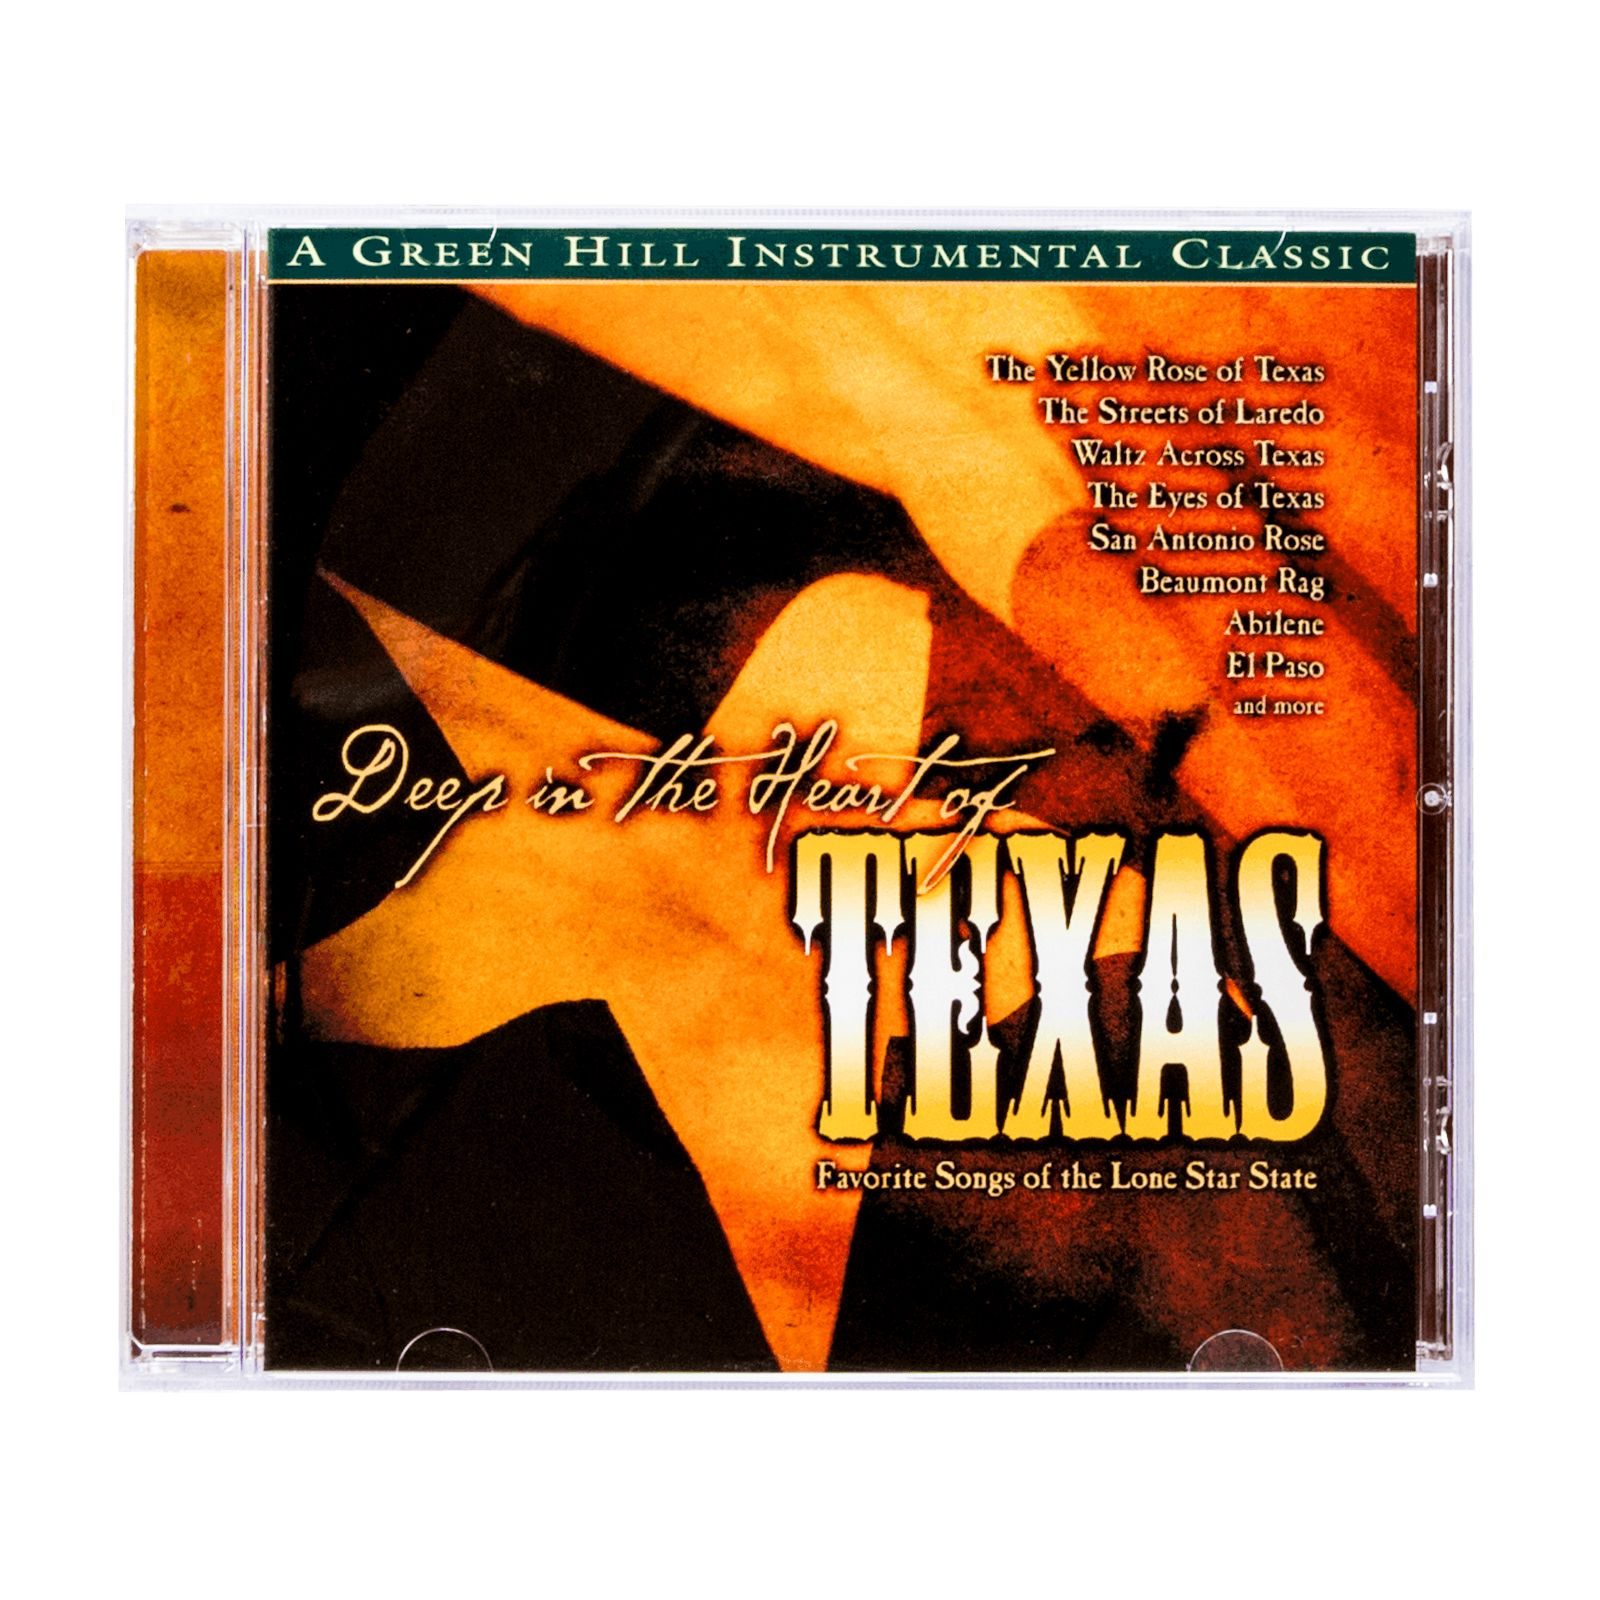 Deep in the Heart of Texas CD